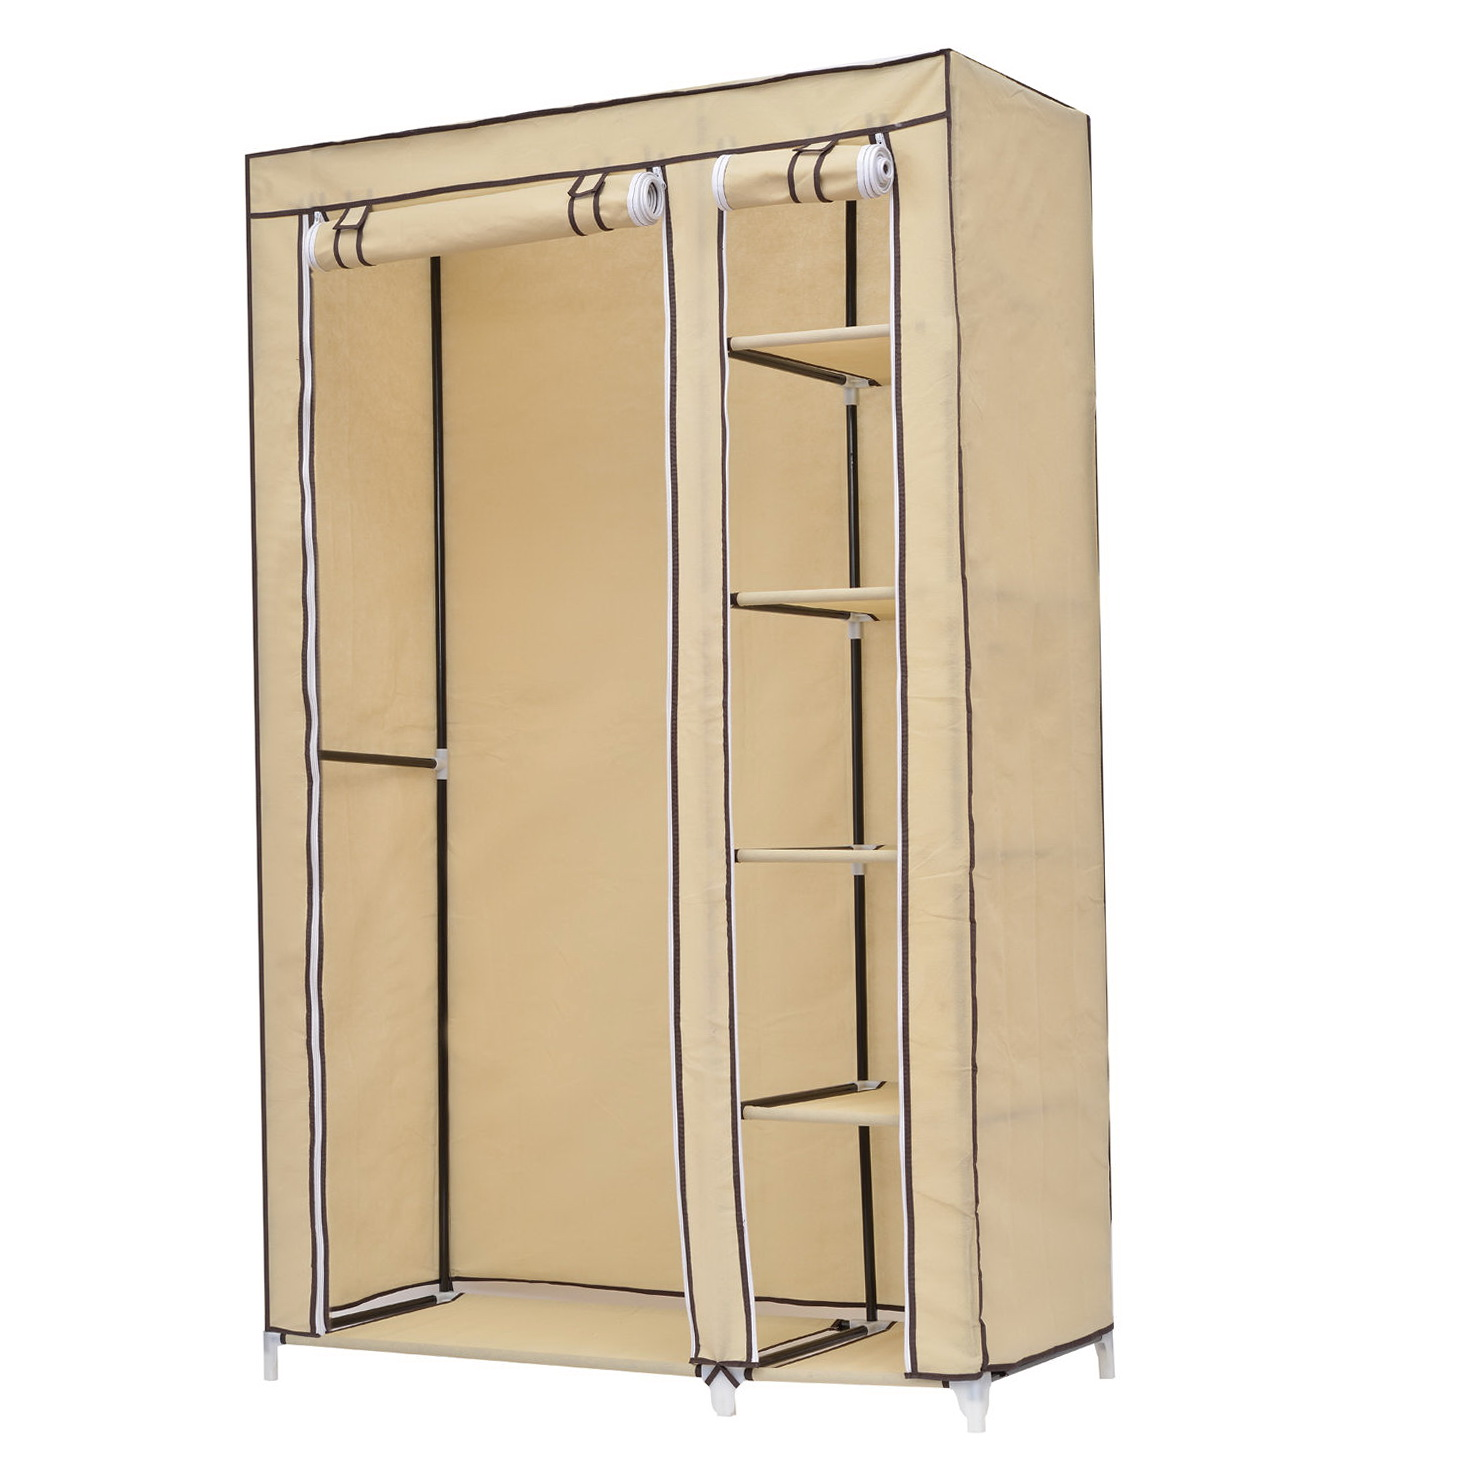 Portable Closet Storage Organizer Home Design Ideas